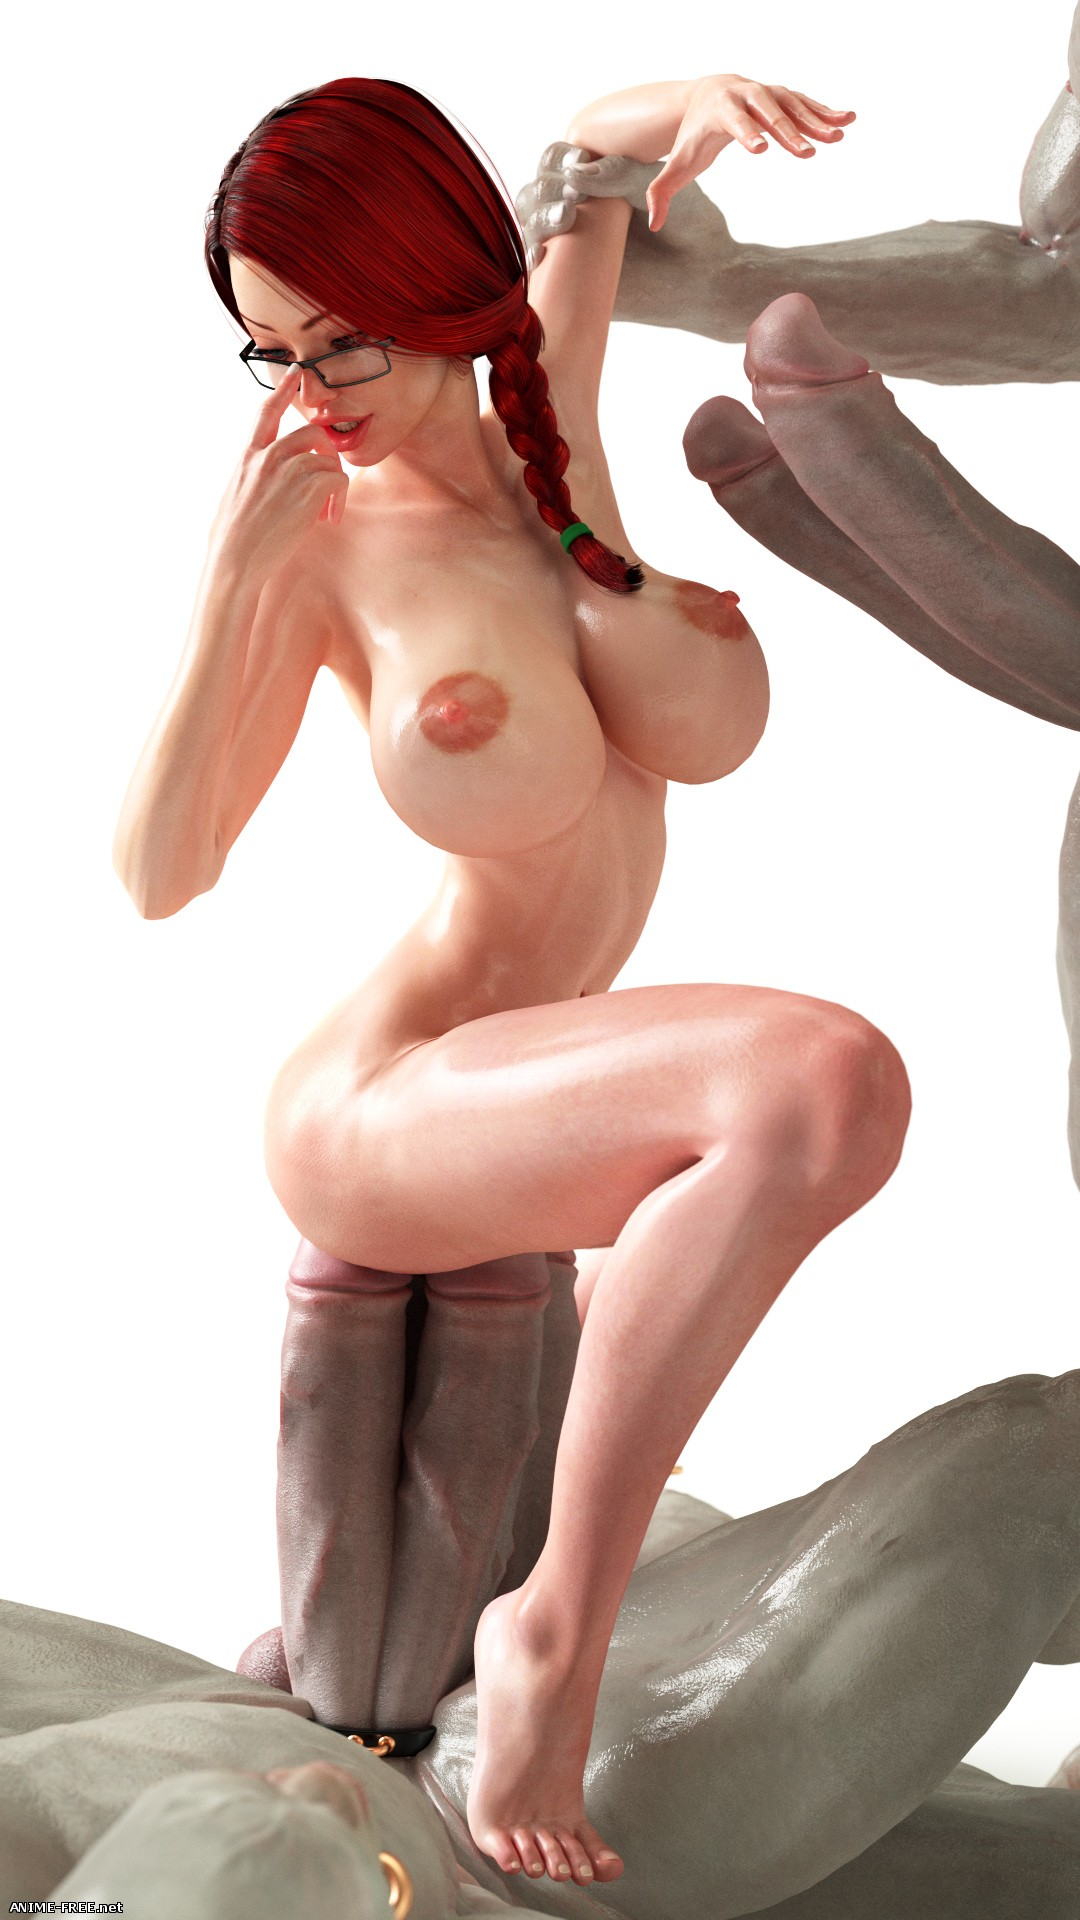 Smerinka Works (Collection) [Uncen] [3DCG] [GIF,PNG,JPG] Hentai ART